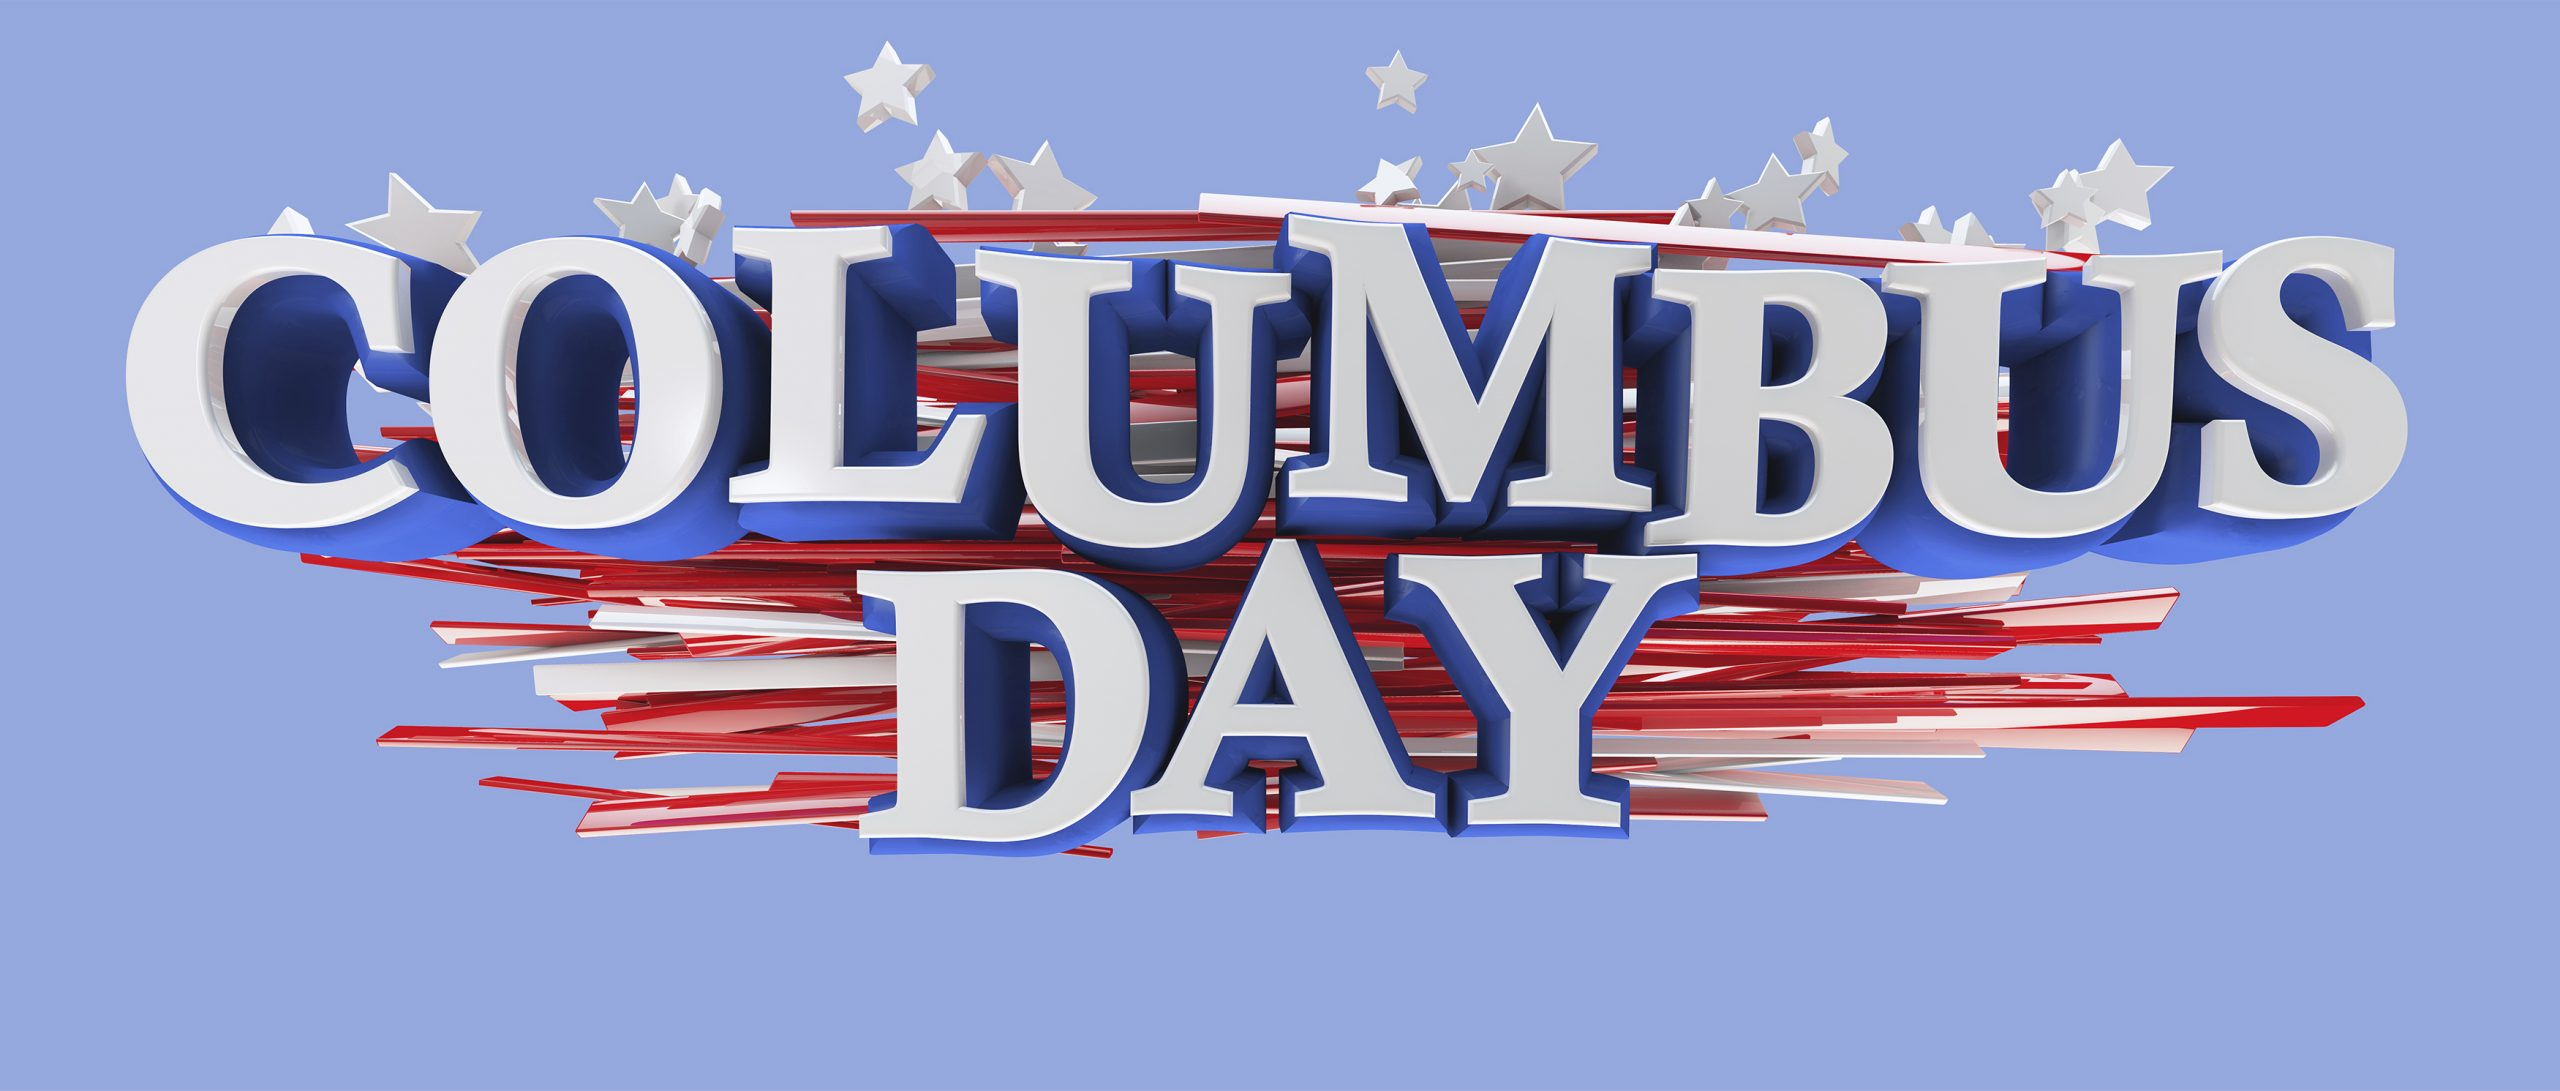 Columbus Day Graphic Message for Digital Signage Communications